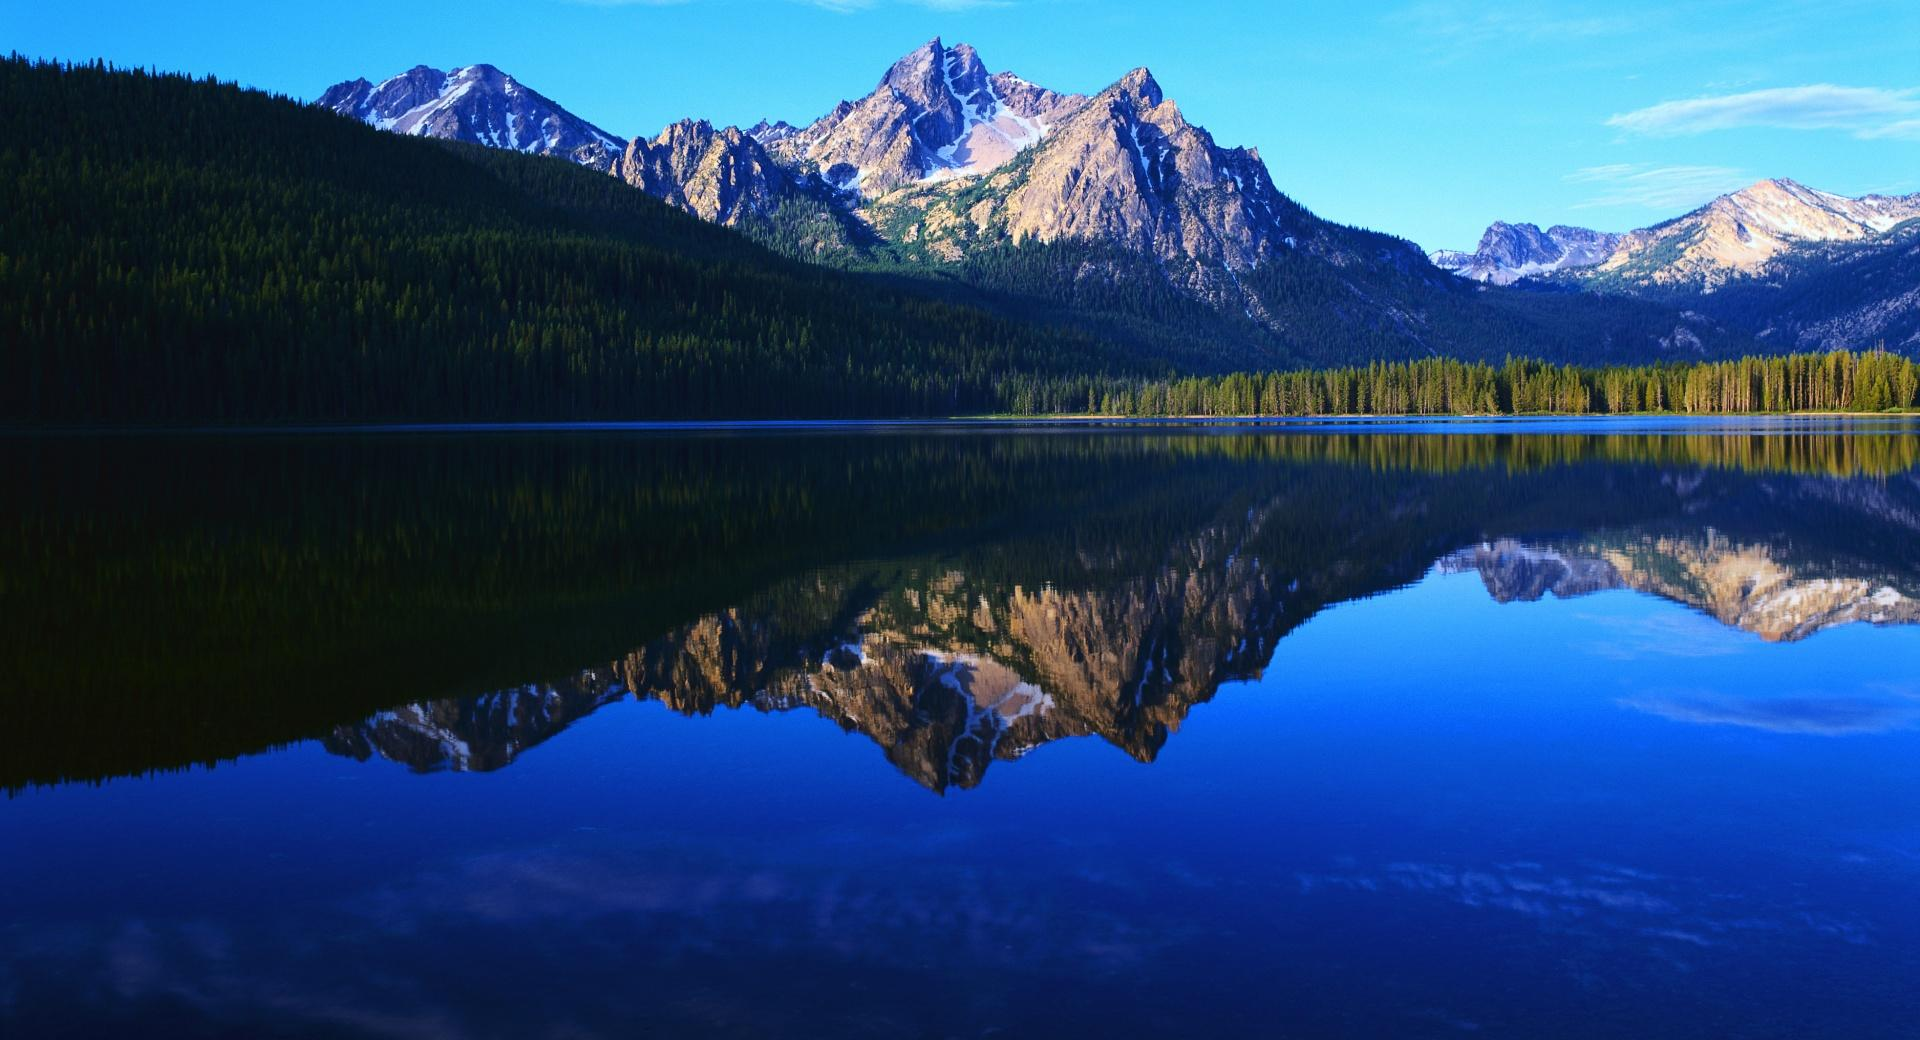 Mountain Scenery Reflection wallpapers HD quality